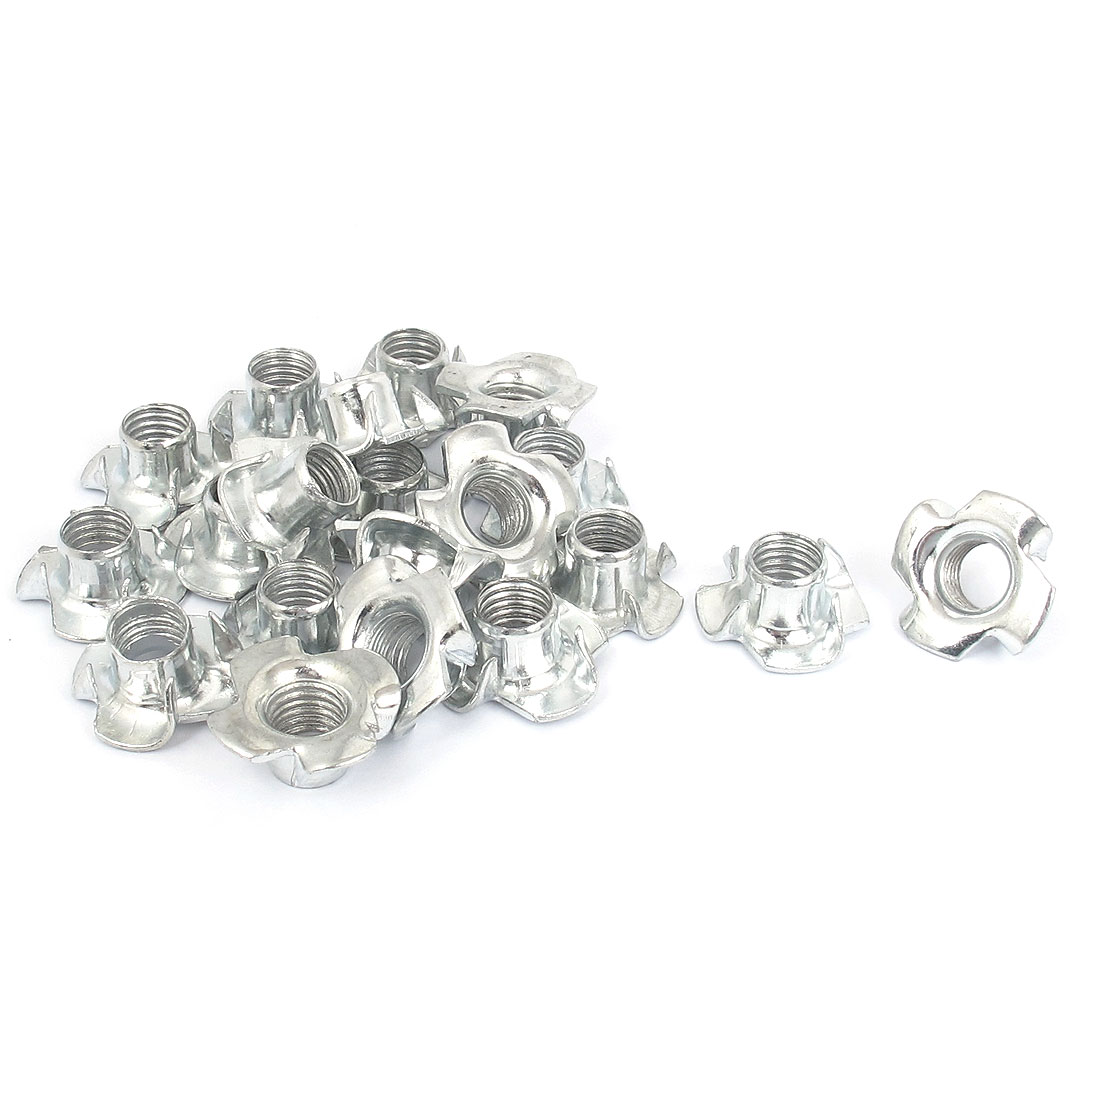 20 Pcs M10x1.5mm T Nut Zinc Plated 4 Prong Tee Nuts Fasteners